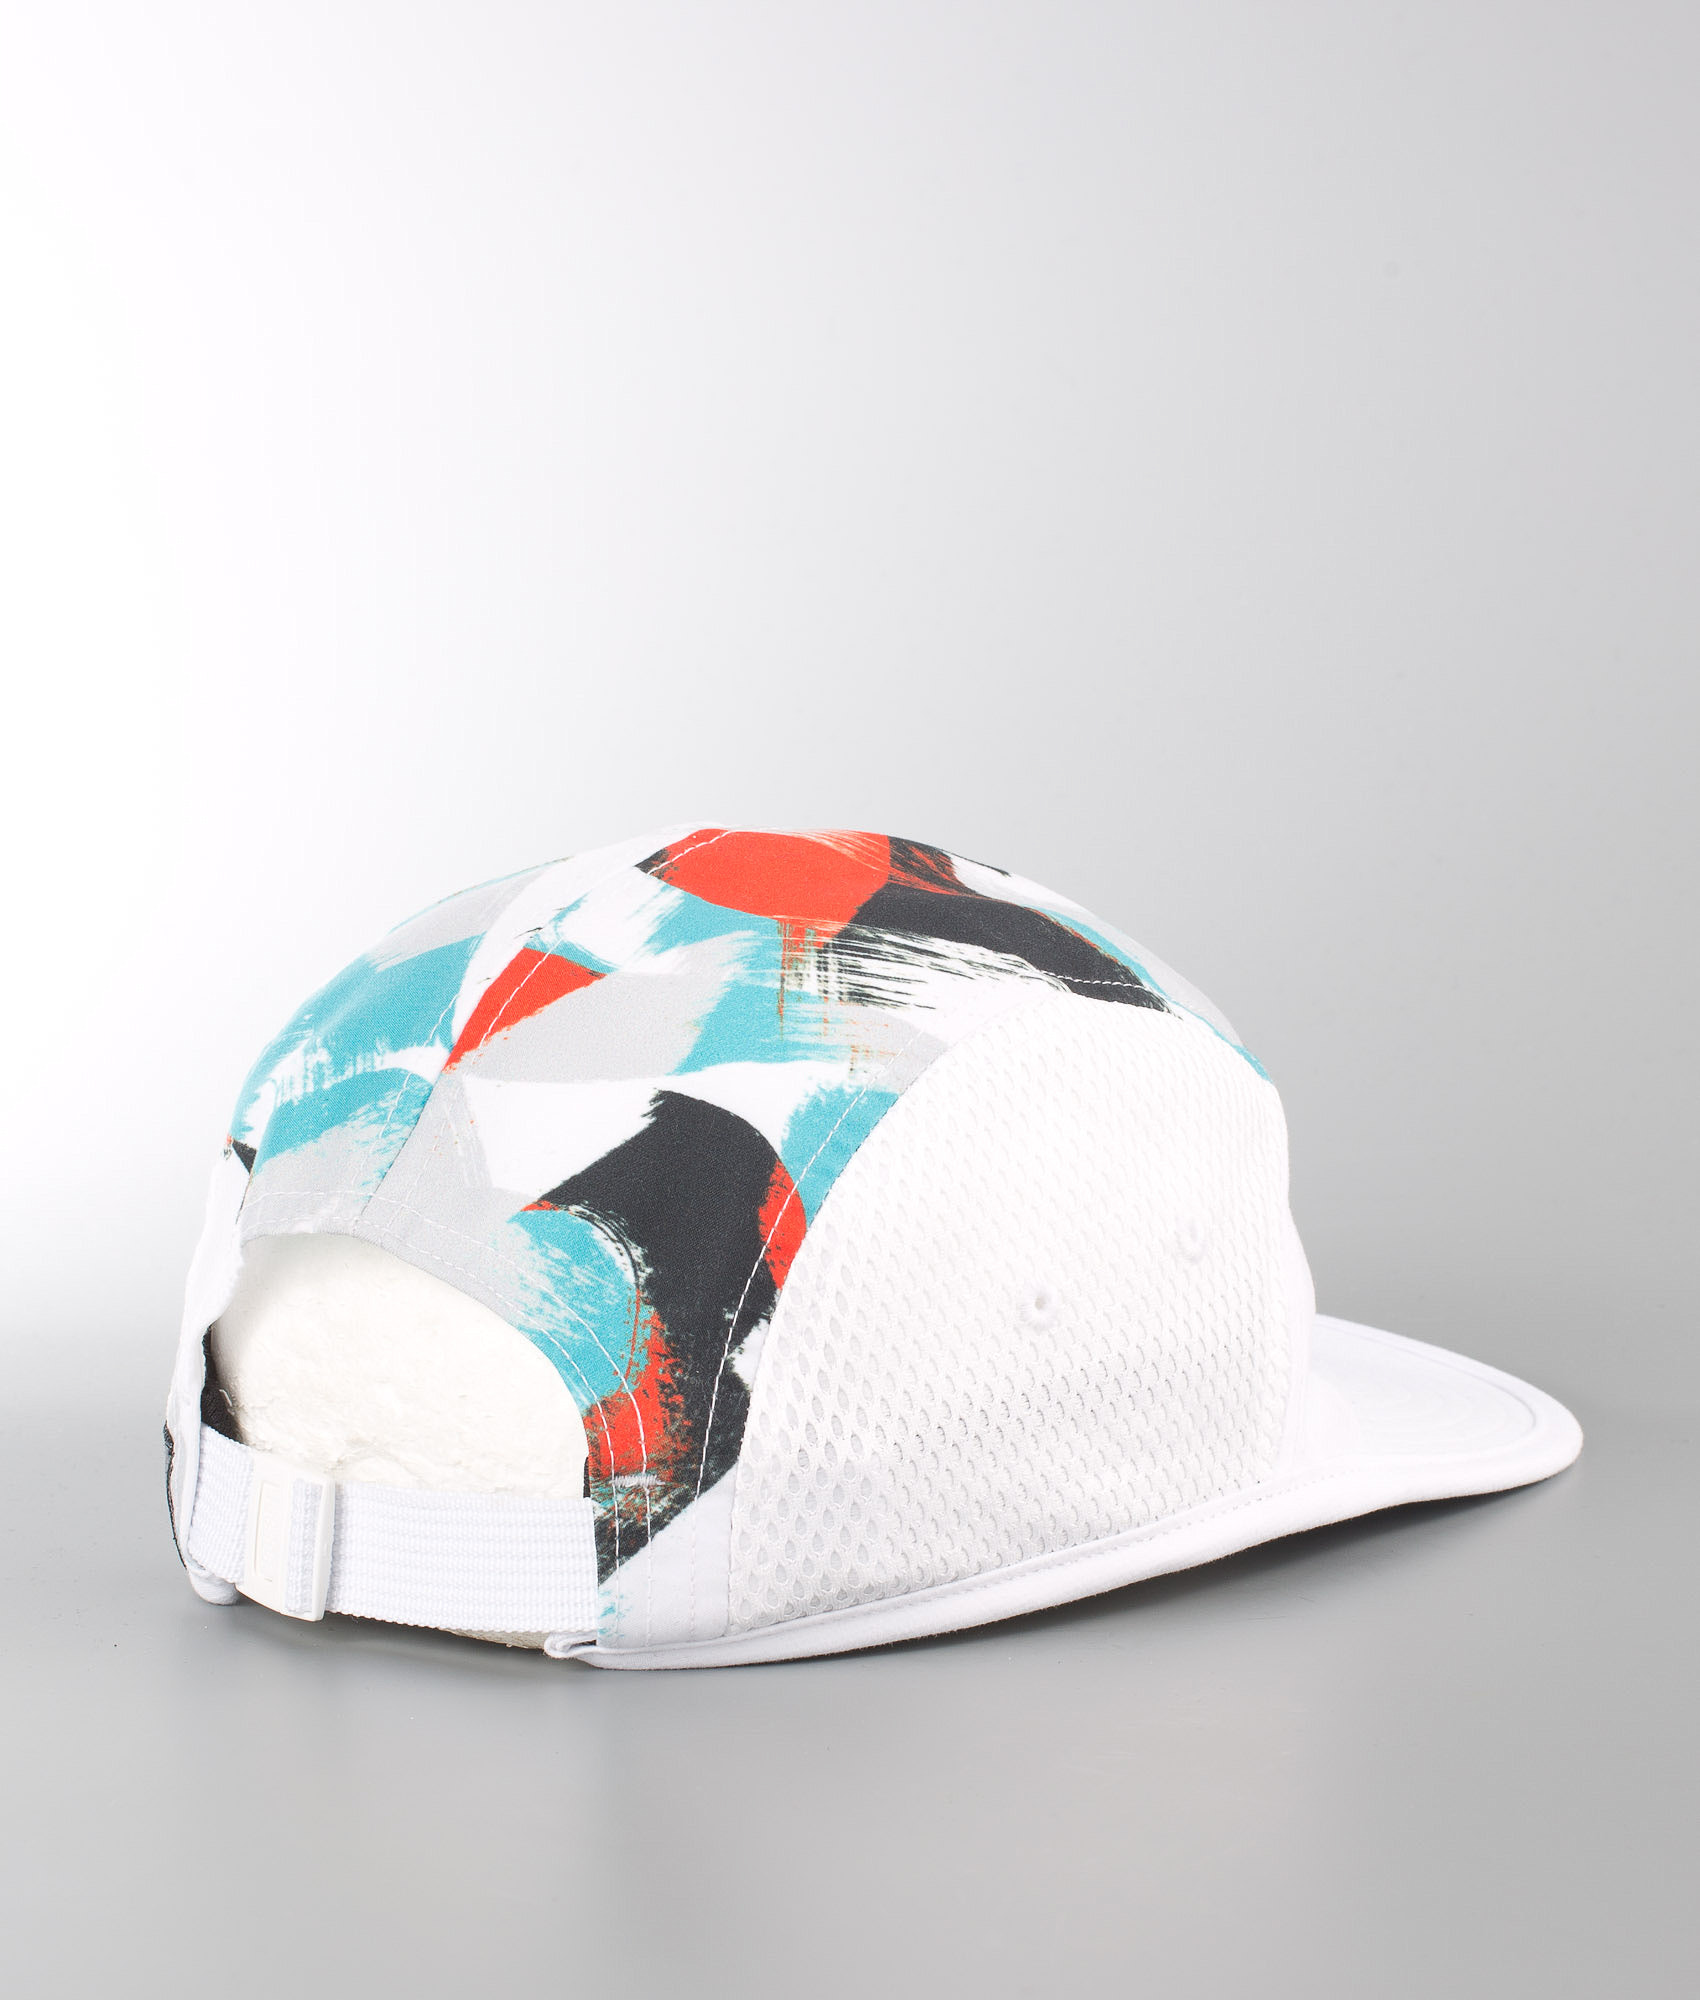 Adidas Skateboarding Courtside Hype Cappello White Multco - Ridestore.it 1c5db15afe8